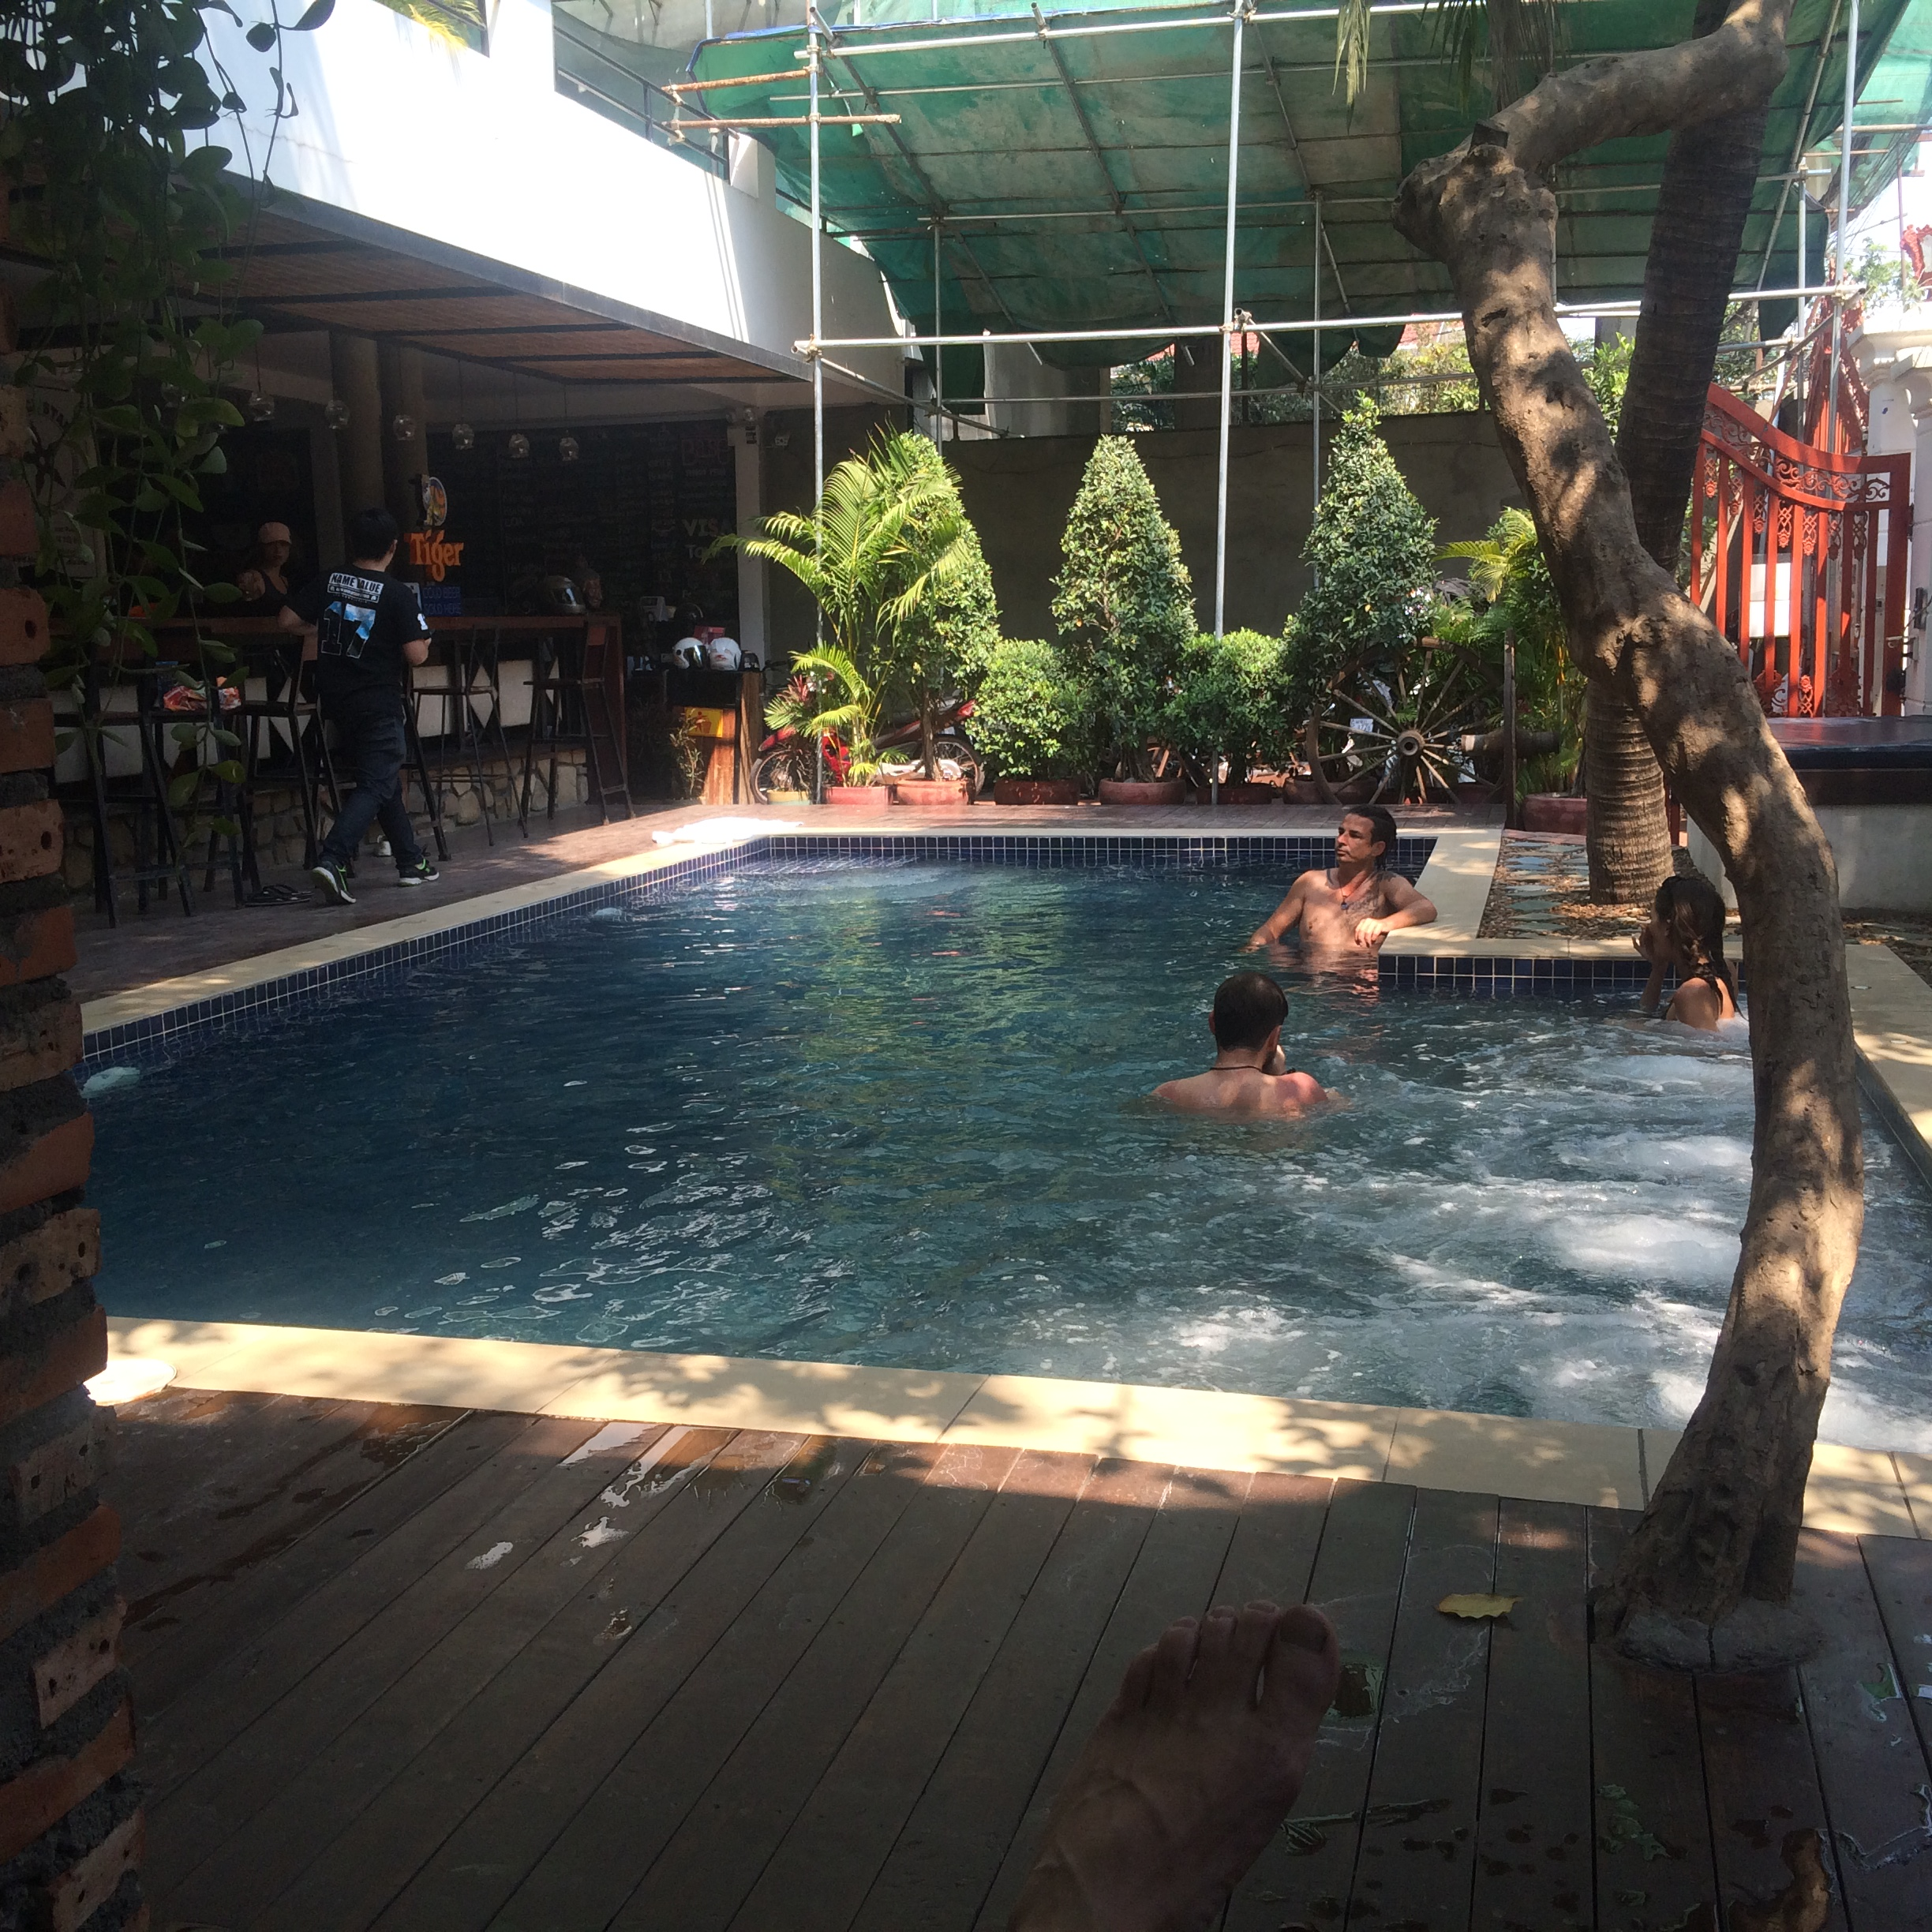 Hostel pool. Sadly it gets hardly any sun in the late afternoon